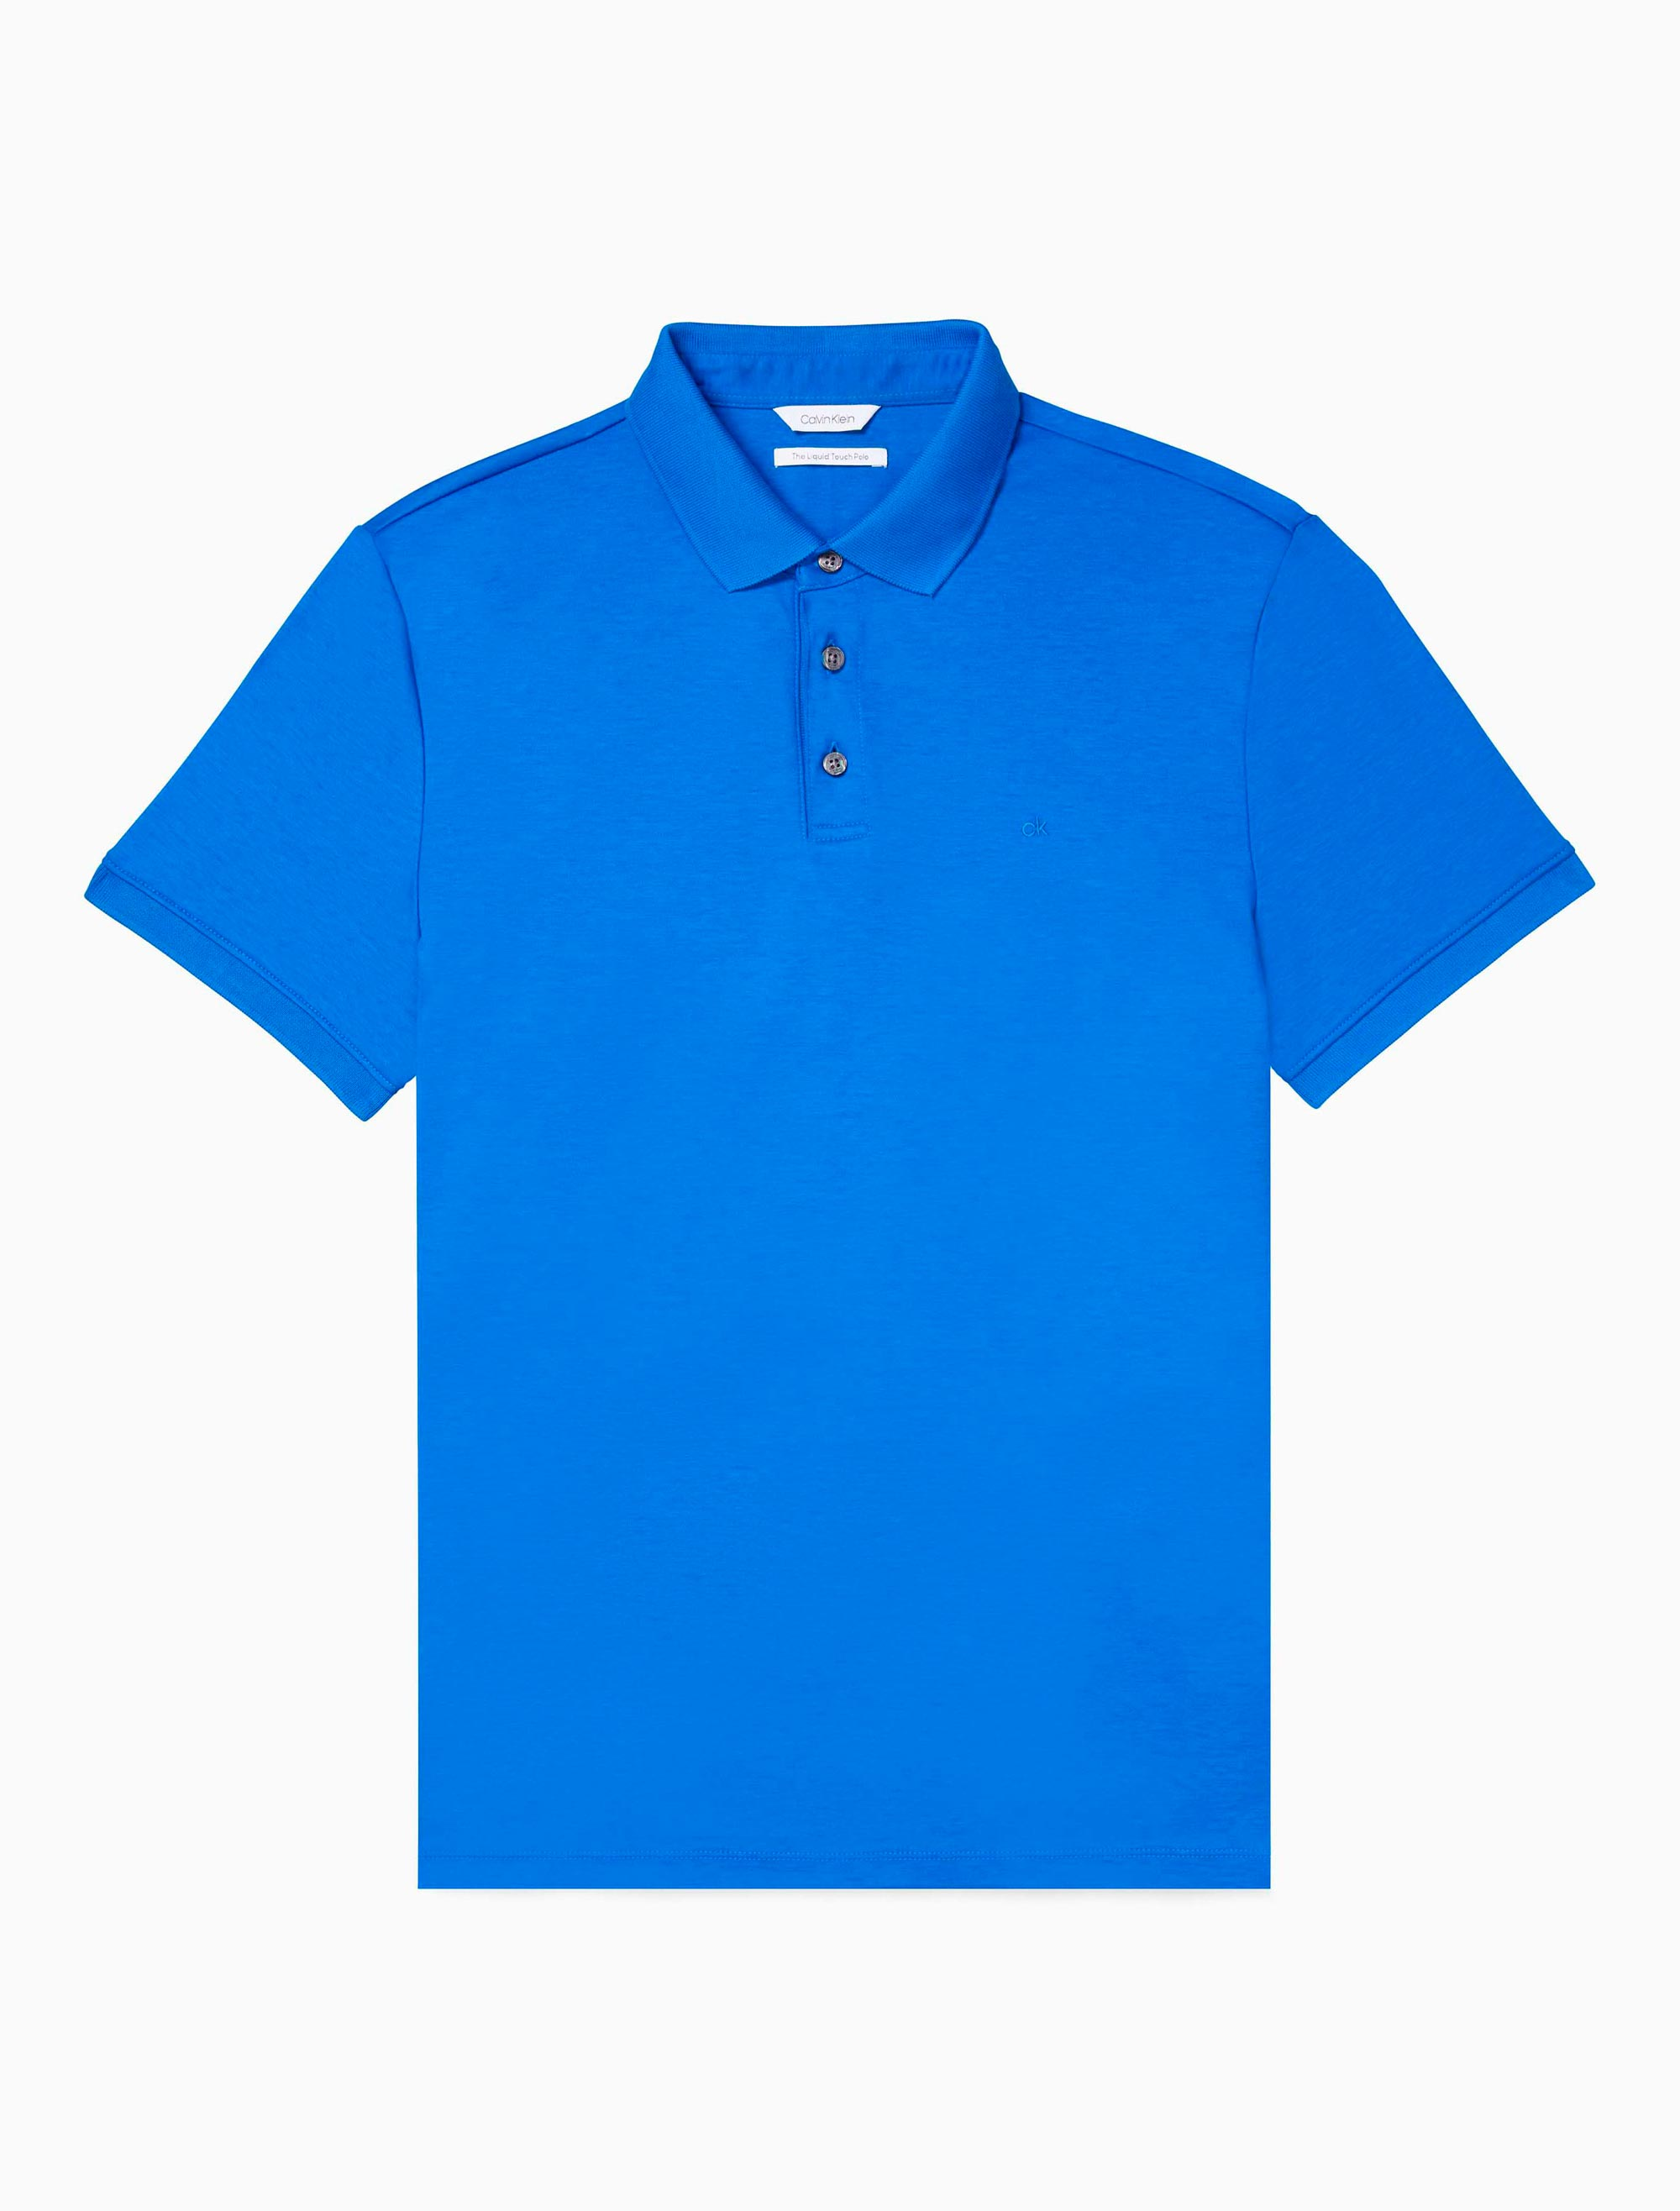 Polo T Shirts Combo Online India DREAMWORKS